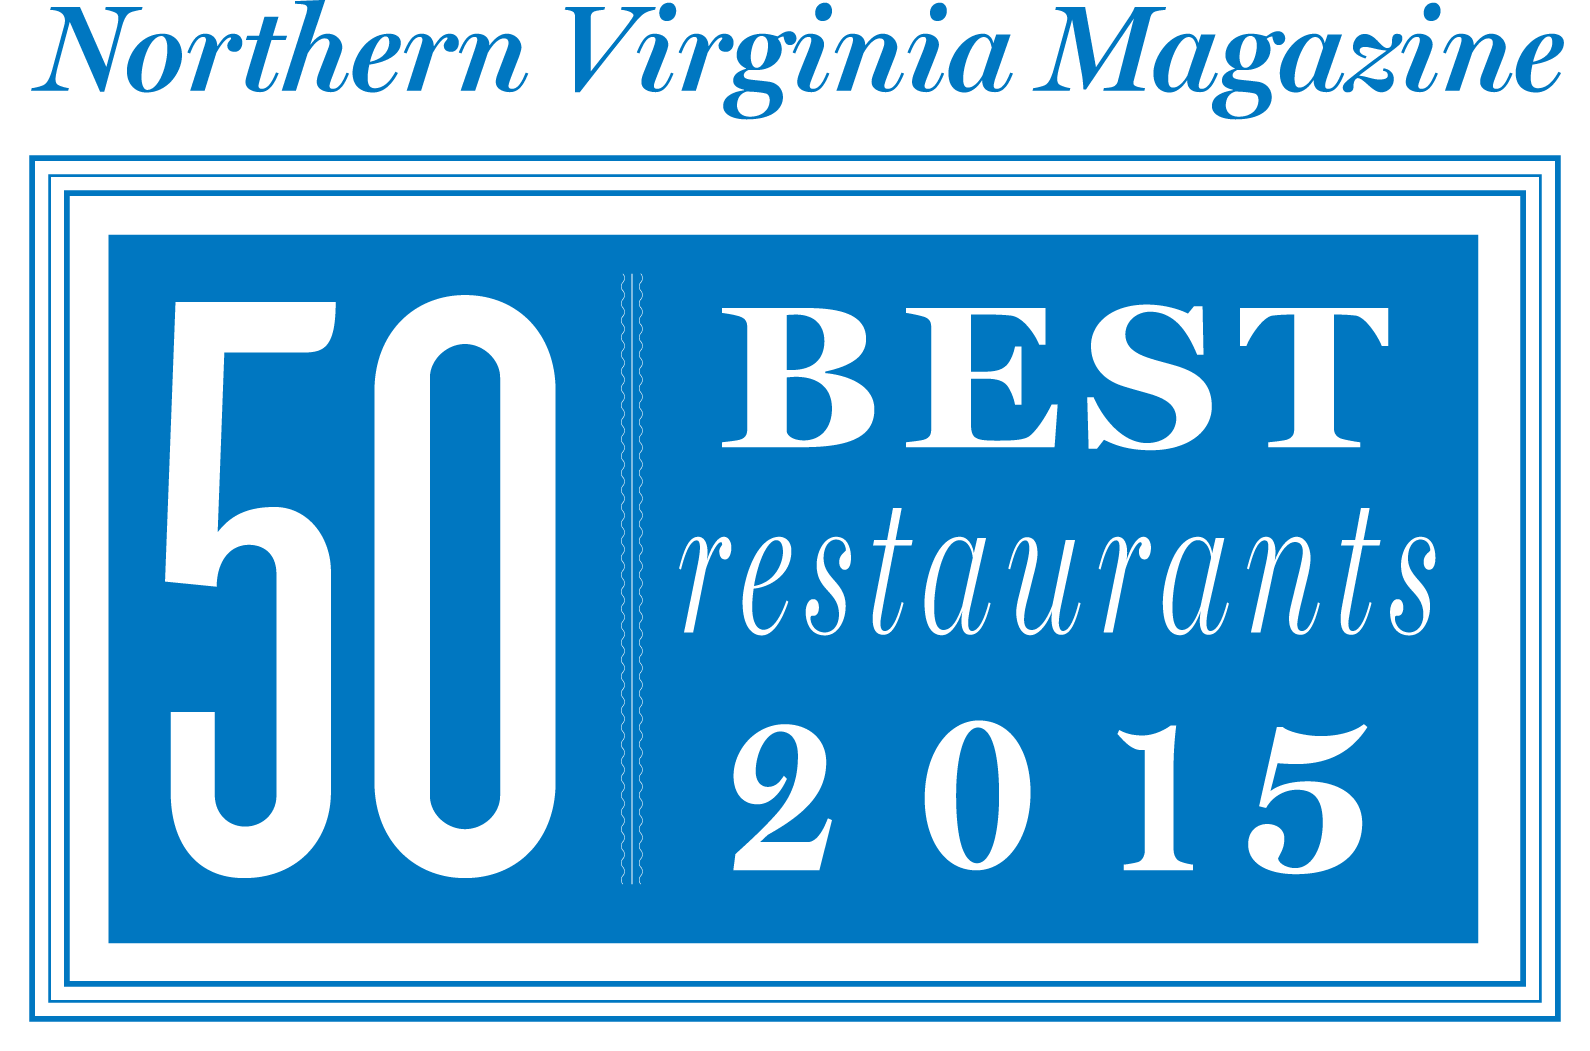 Maple Ave Restaurant: Northern Virginia Magazine 50 Best Restaurants of 2015